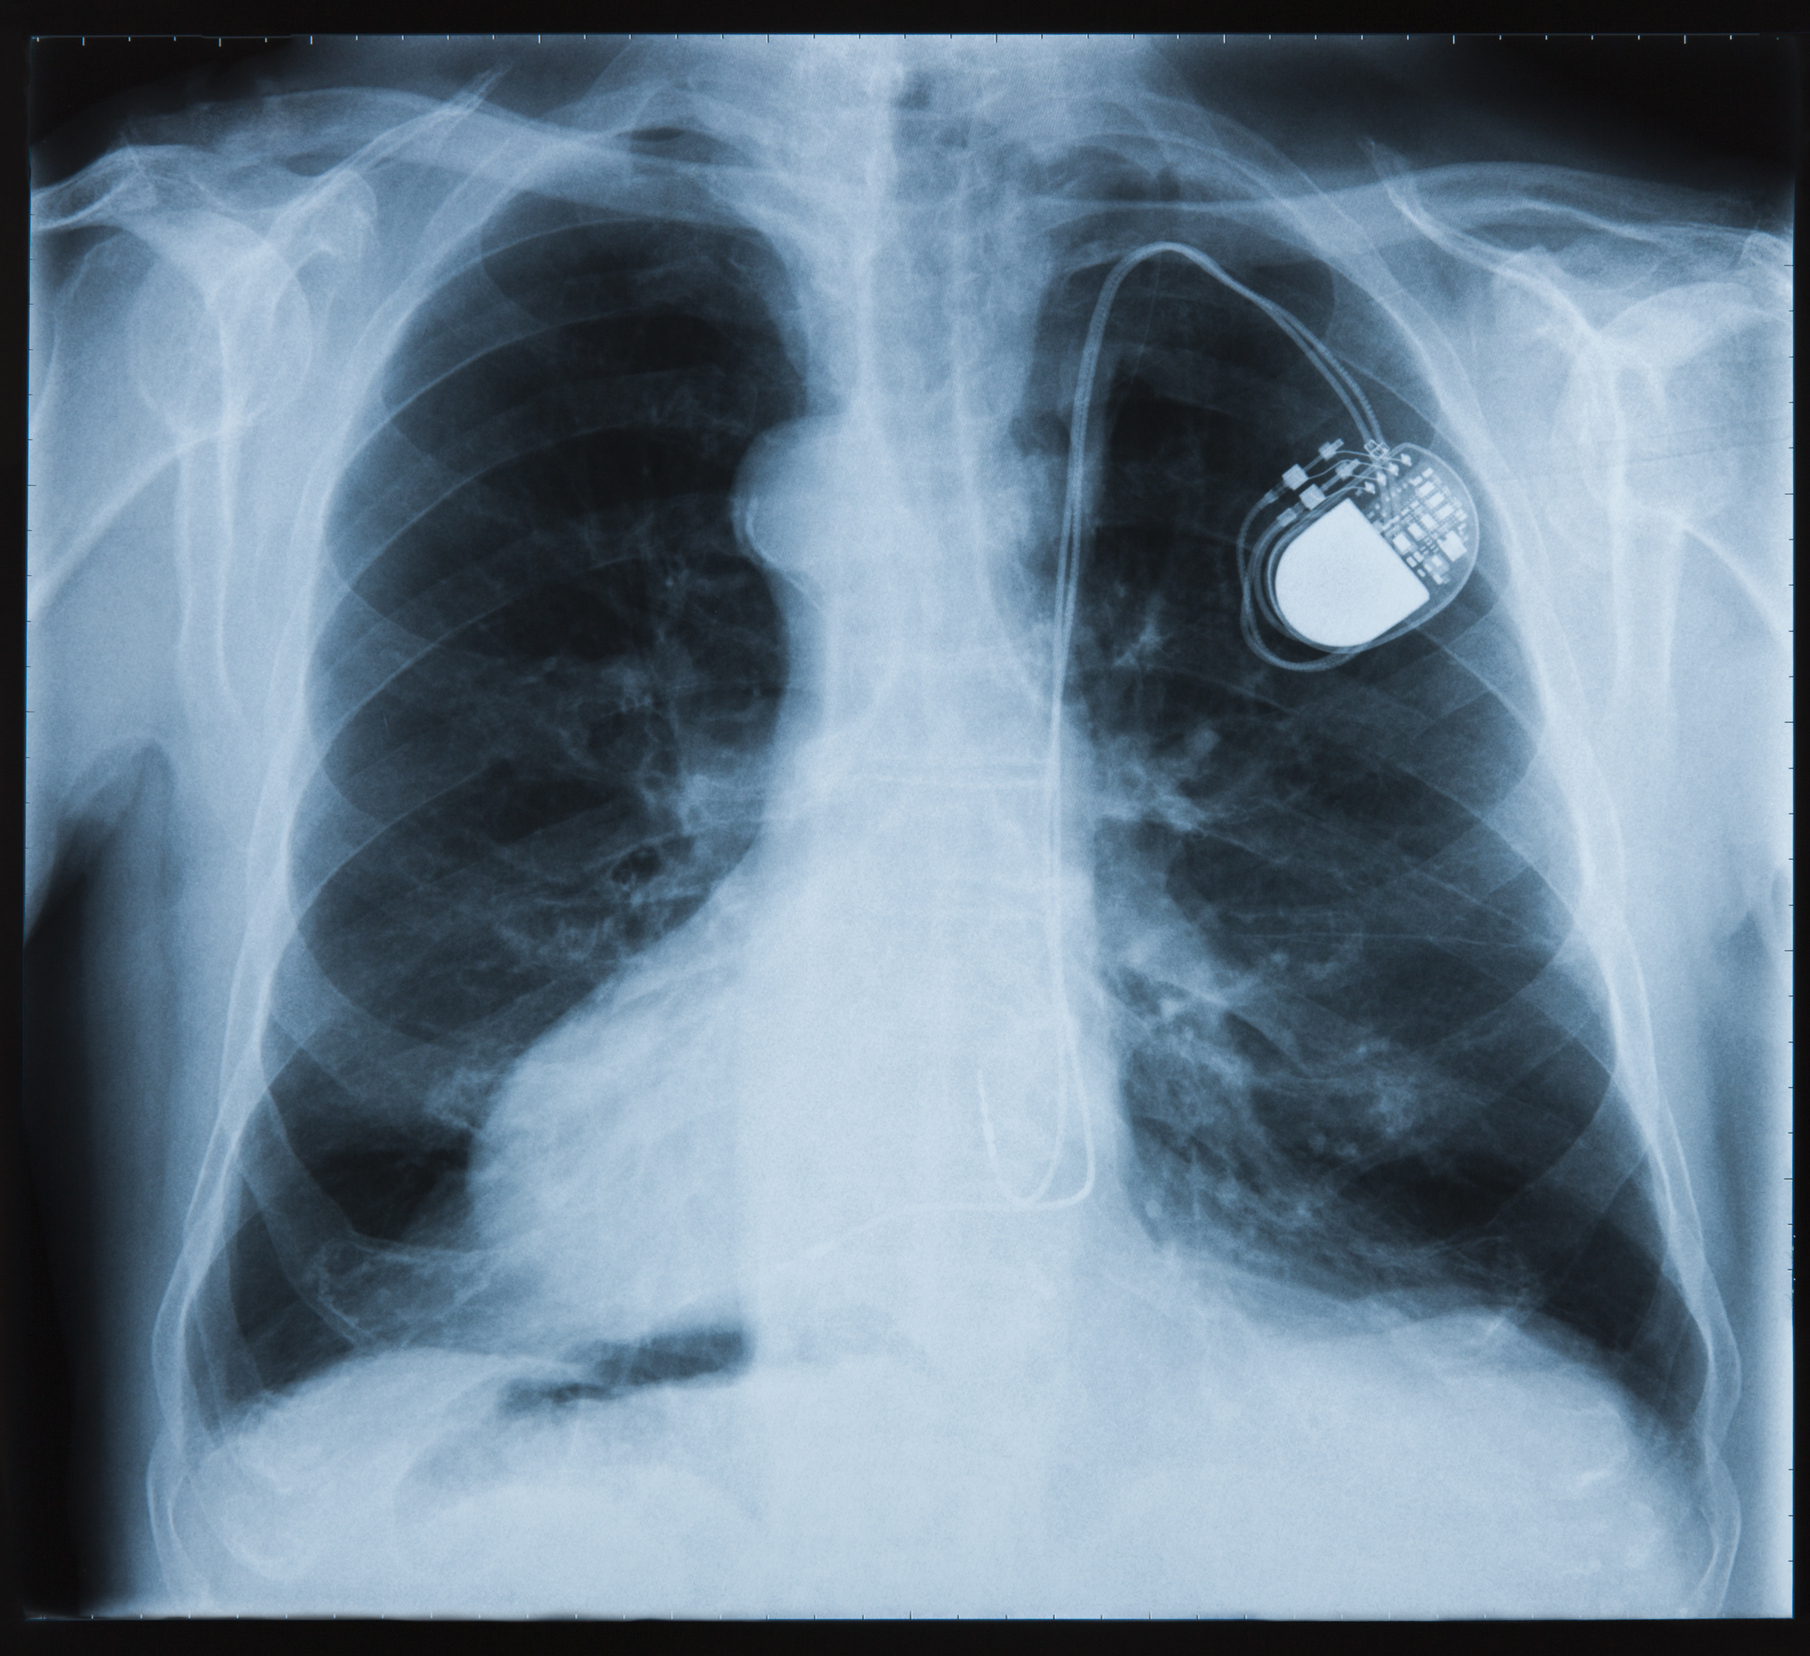 Pacemakers are Vulnerable to Cyberattacks